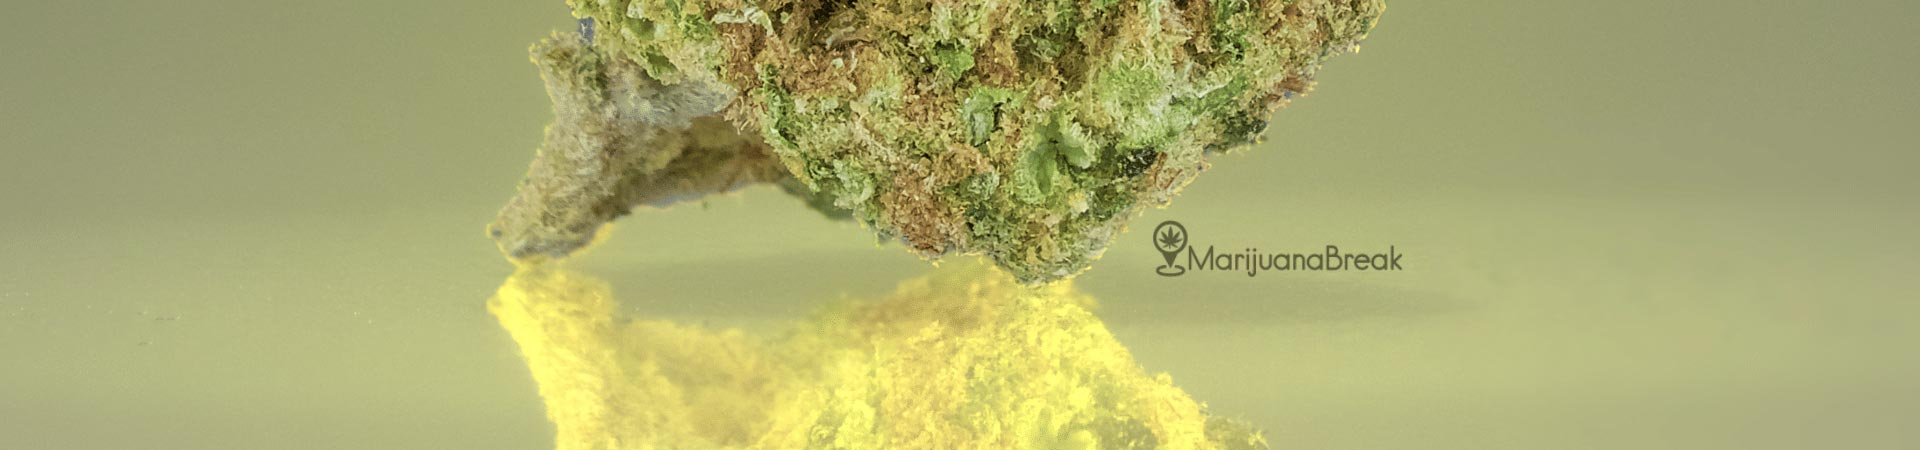 pineapple express cannabis strain review